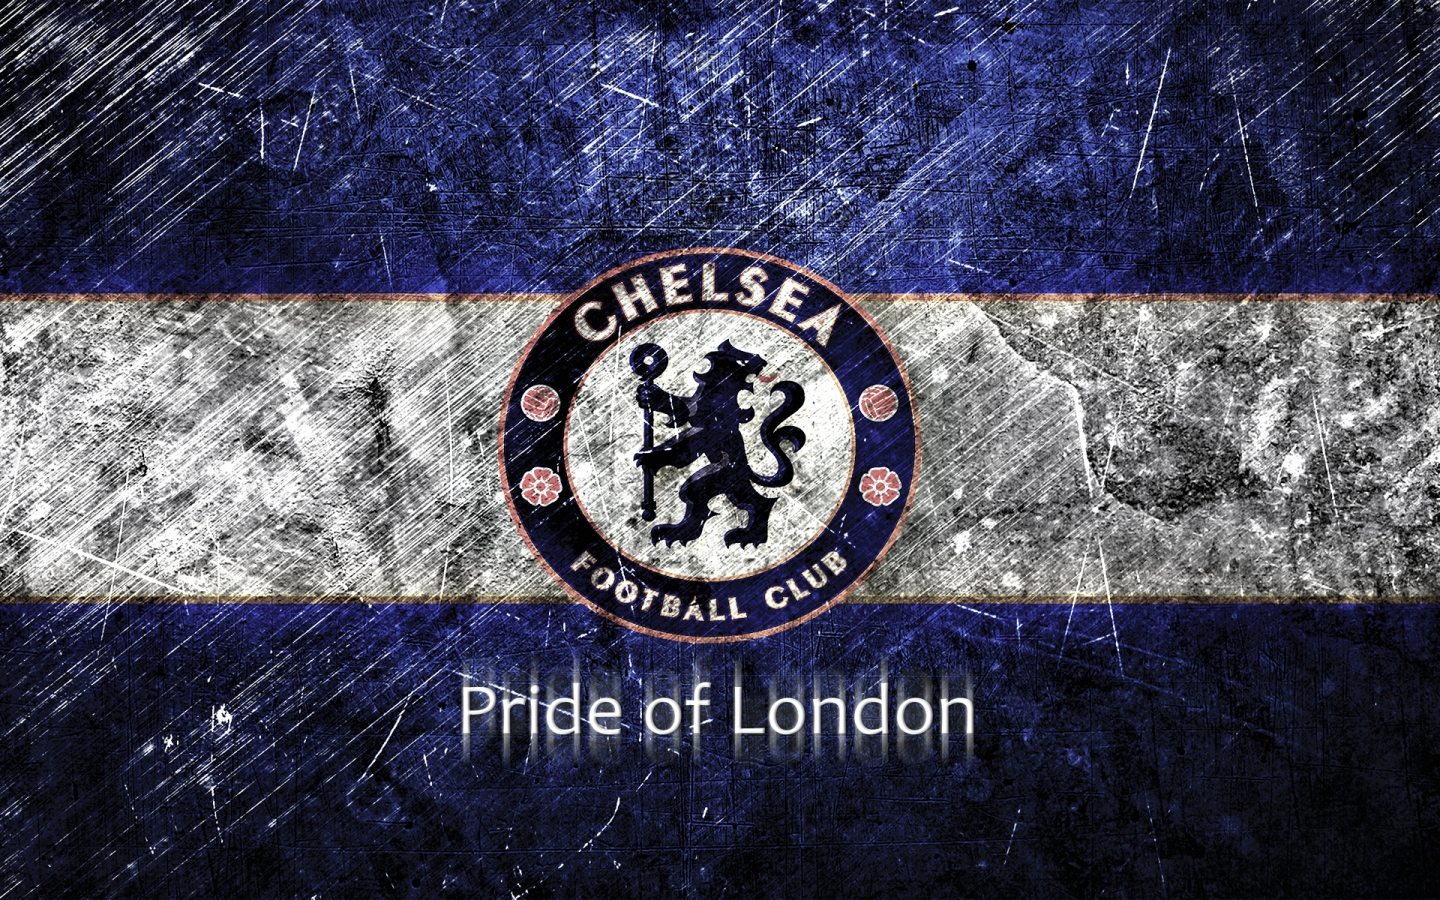 Chelsea Pride of London for 1440 x 900 widescreen resolution